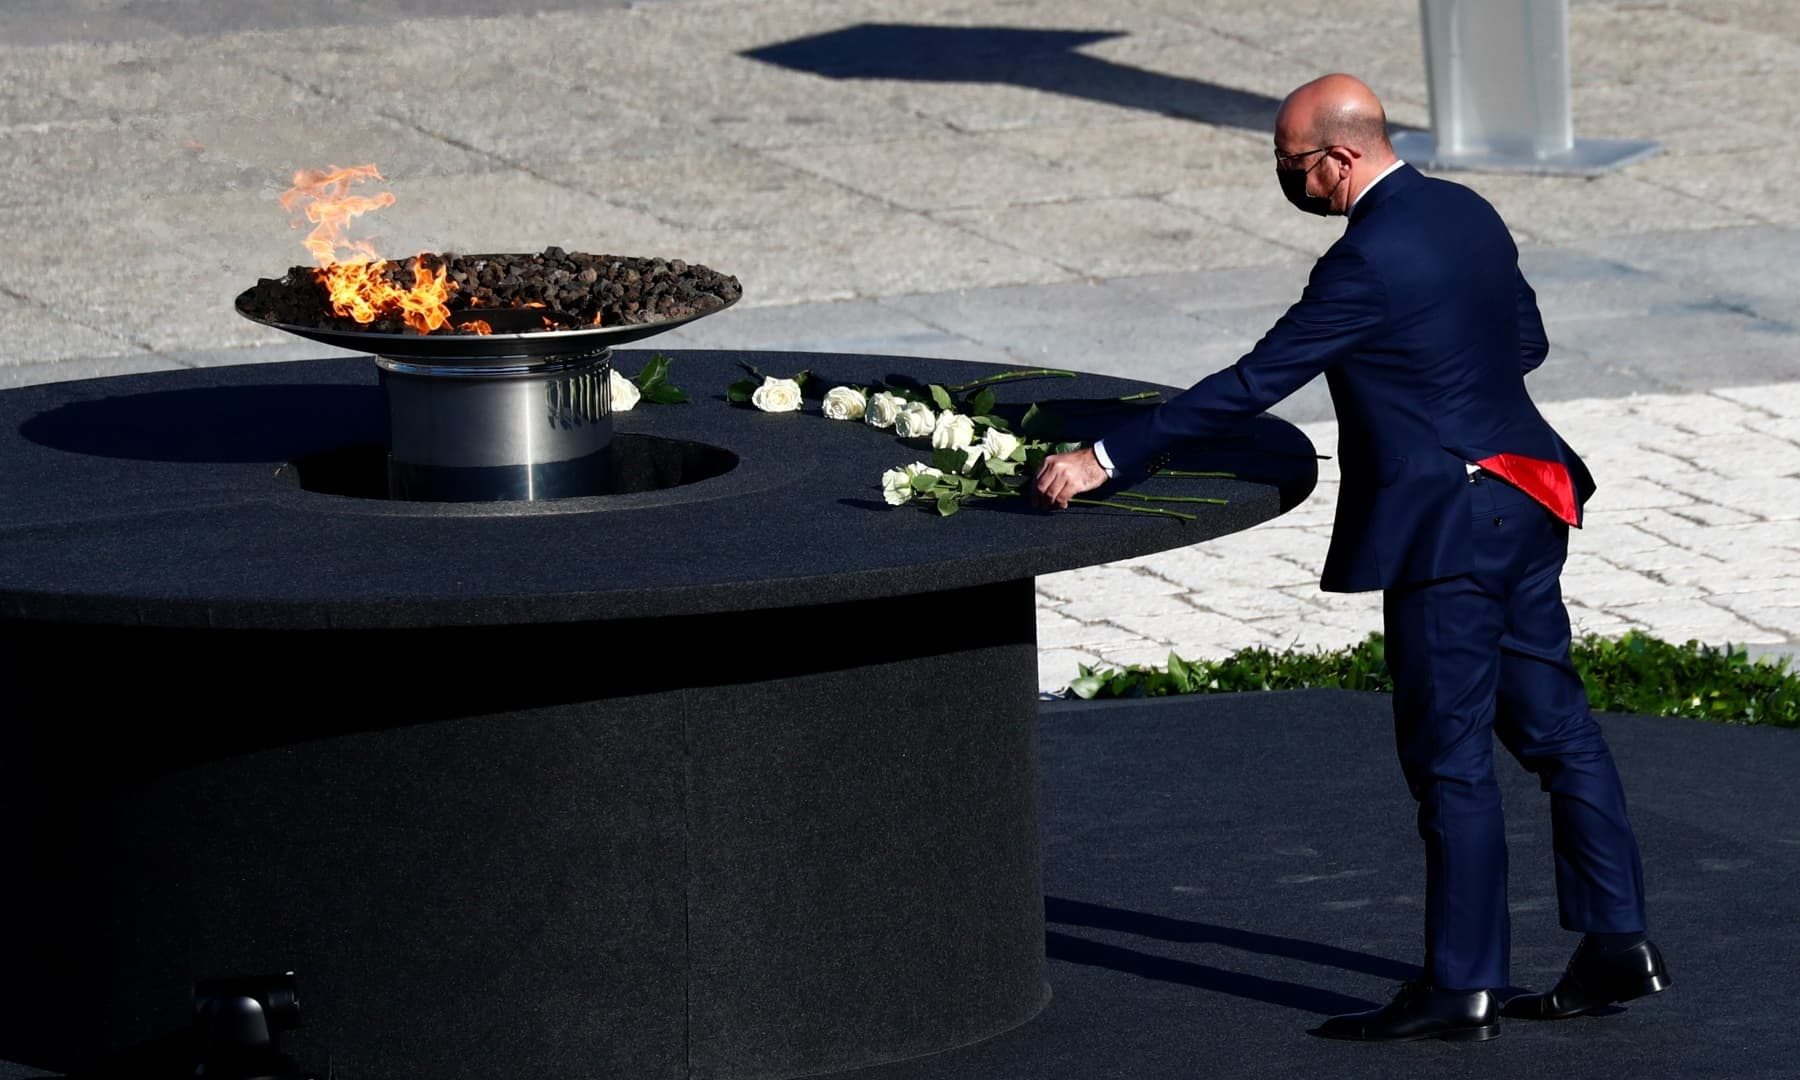 European Council President Charles Michel places flowers during a state tribute in memory of Spain's Covid-19 victims. — Reuters